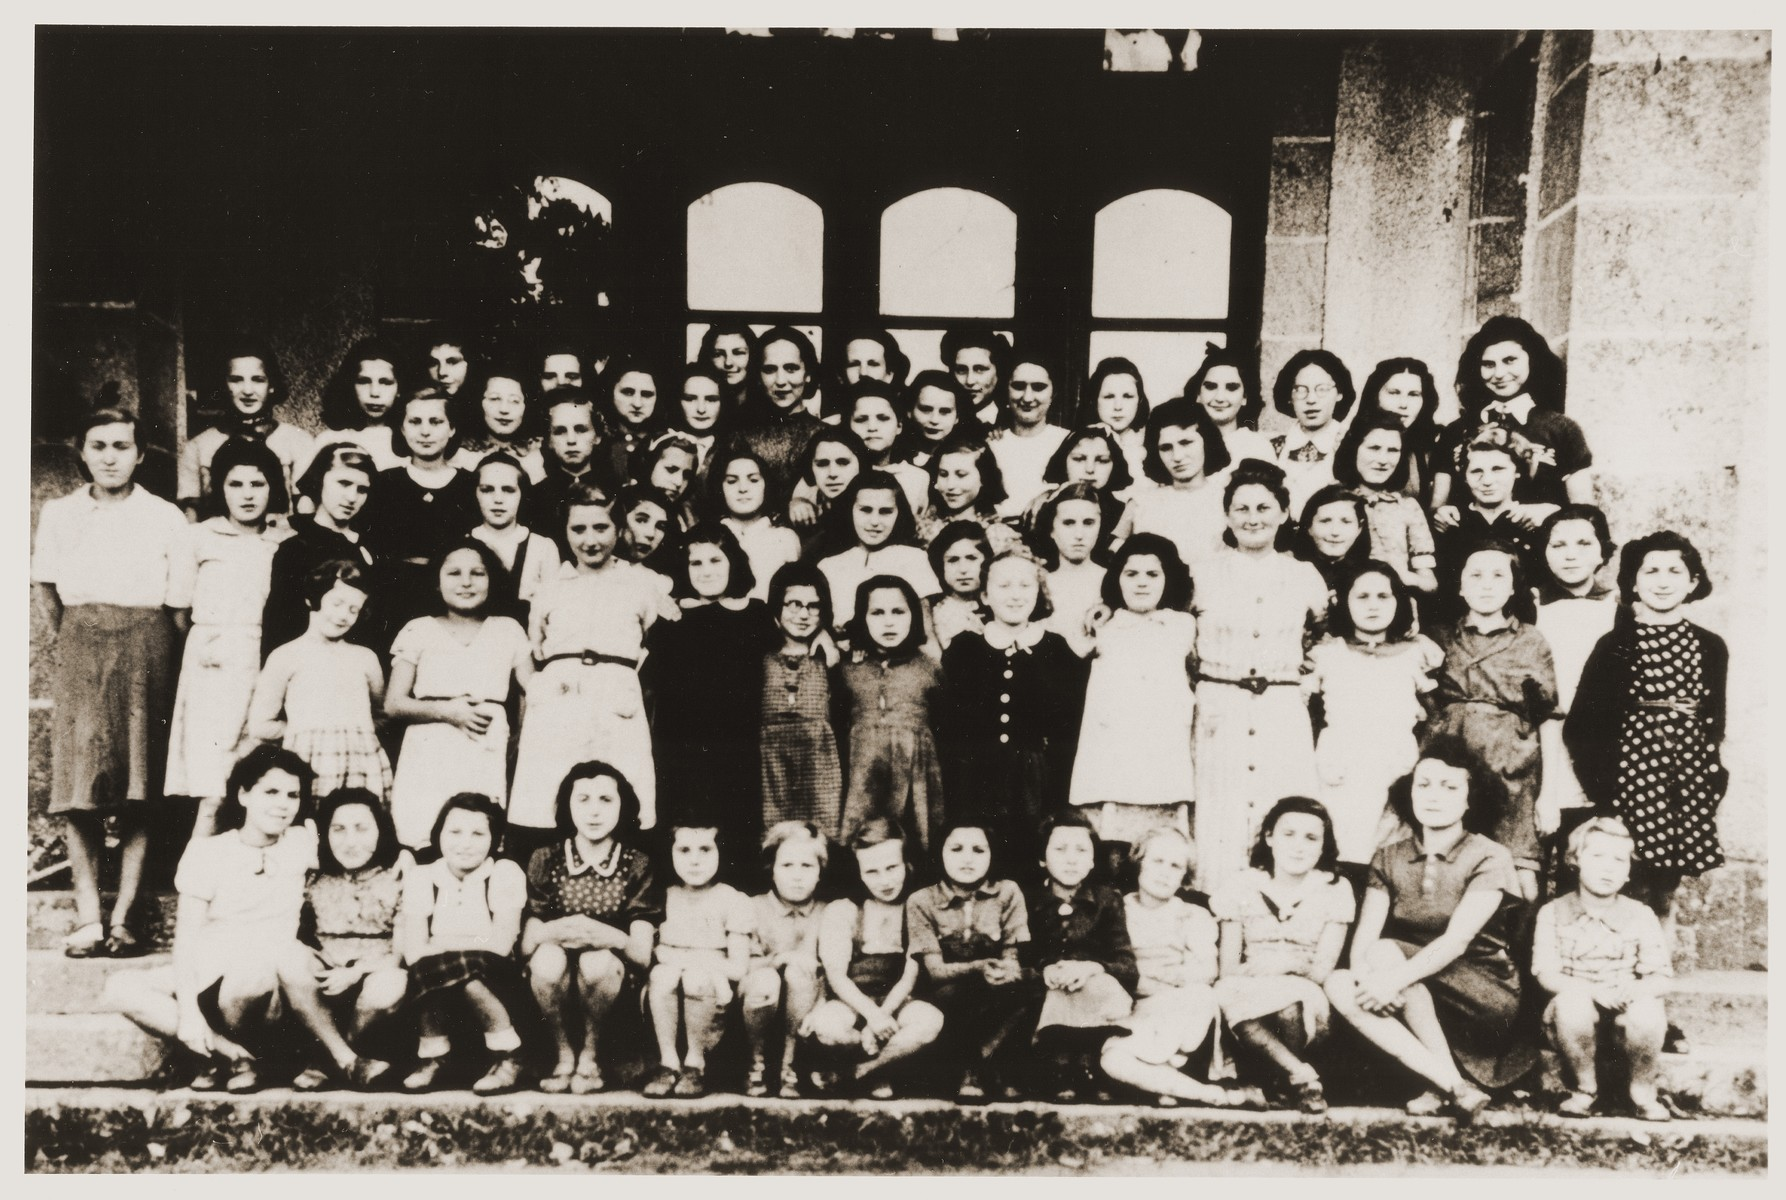 Group portrait of Jewish refugee children, who had been released from French internment camps, at the OSE [Oeuvre de secours aux enfants] home for religious girls at Le Couret.  Among those pictured is Beate Stern (front row, seventh from the left) and Margot Altman (first row, fourth from the left).